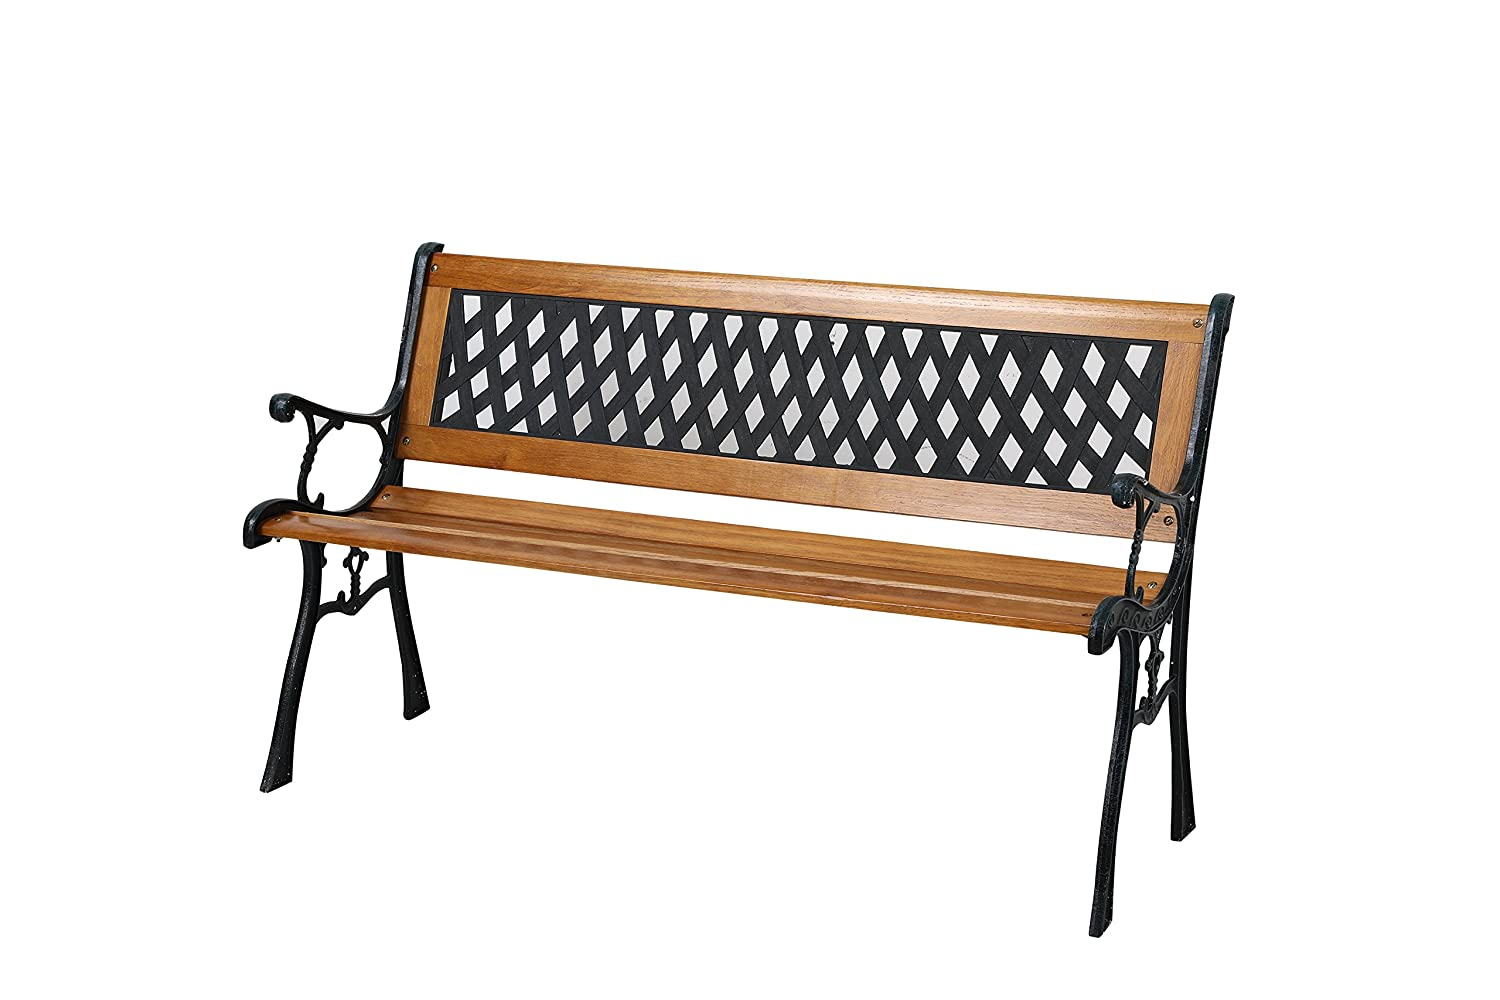 3 Seater Garden Patio Bench with Hardwood Slats and Cast Iron Legs Bespoke garden